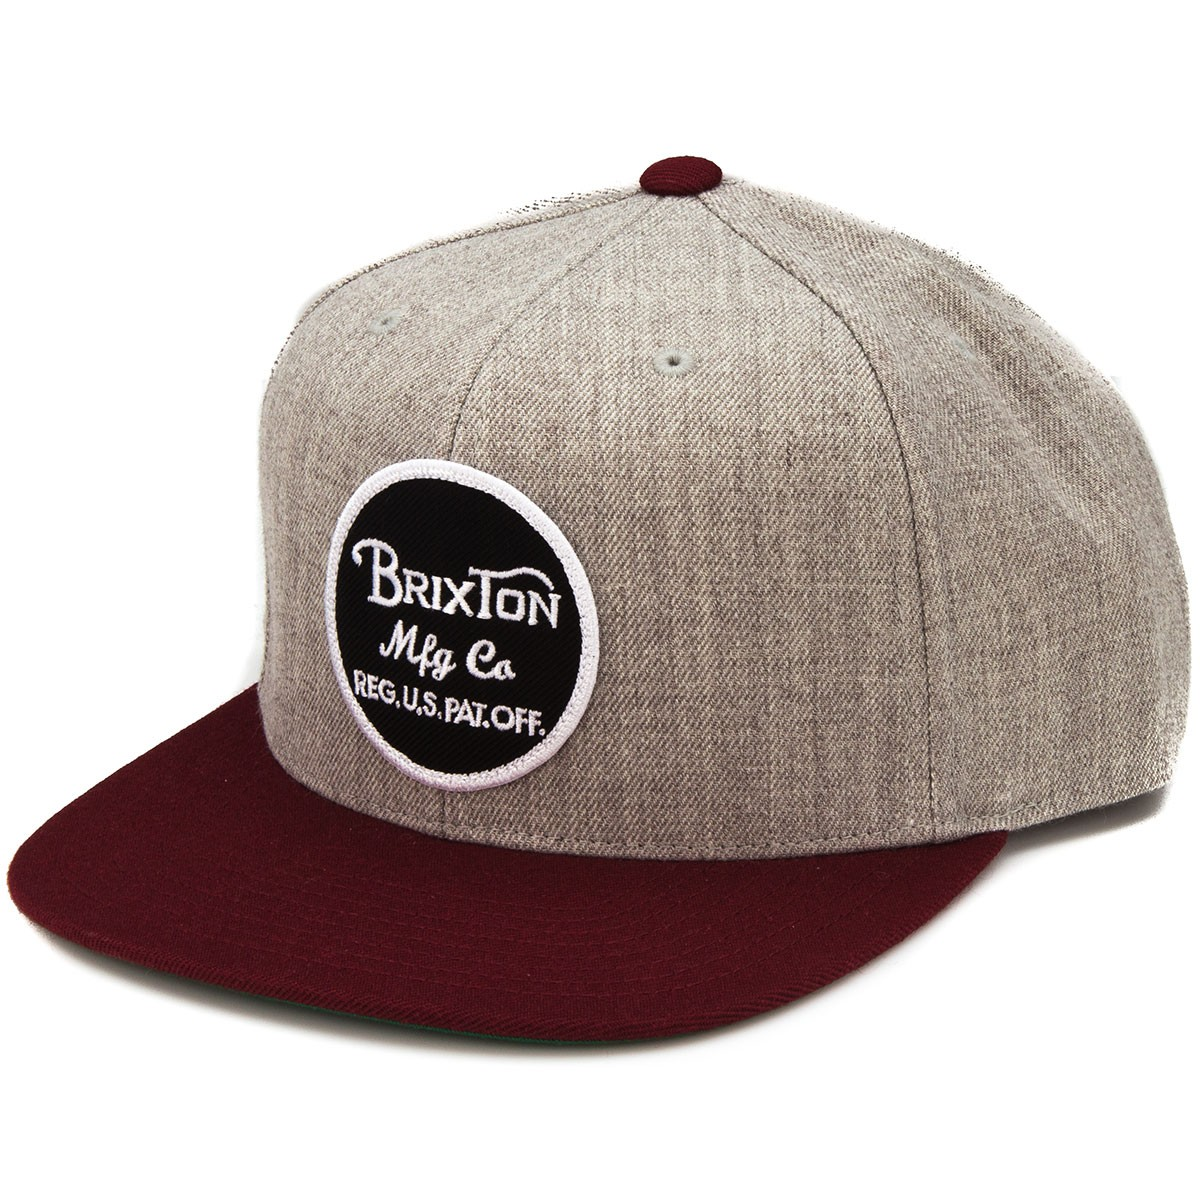 Brixton Wheeler Snap Back Hat - Light Heather Grey/Burgundy